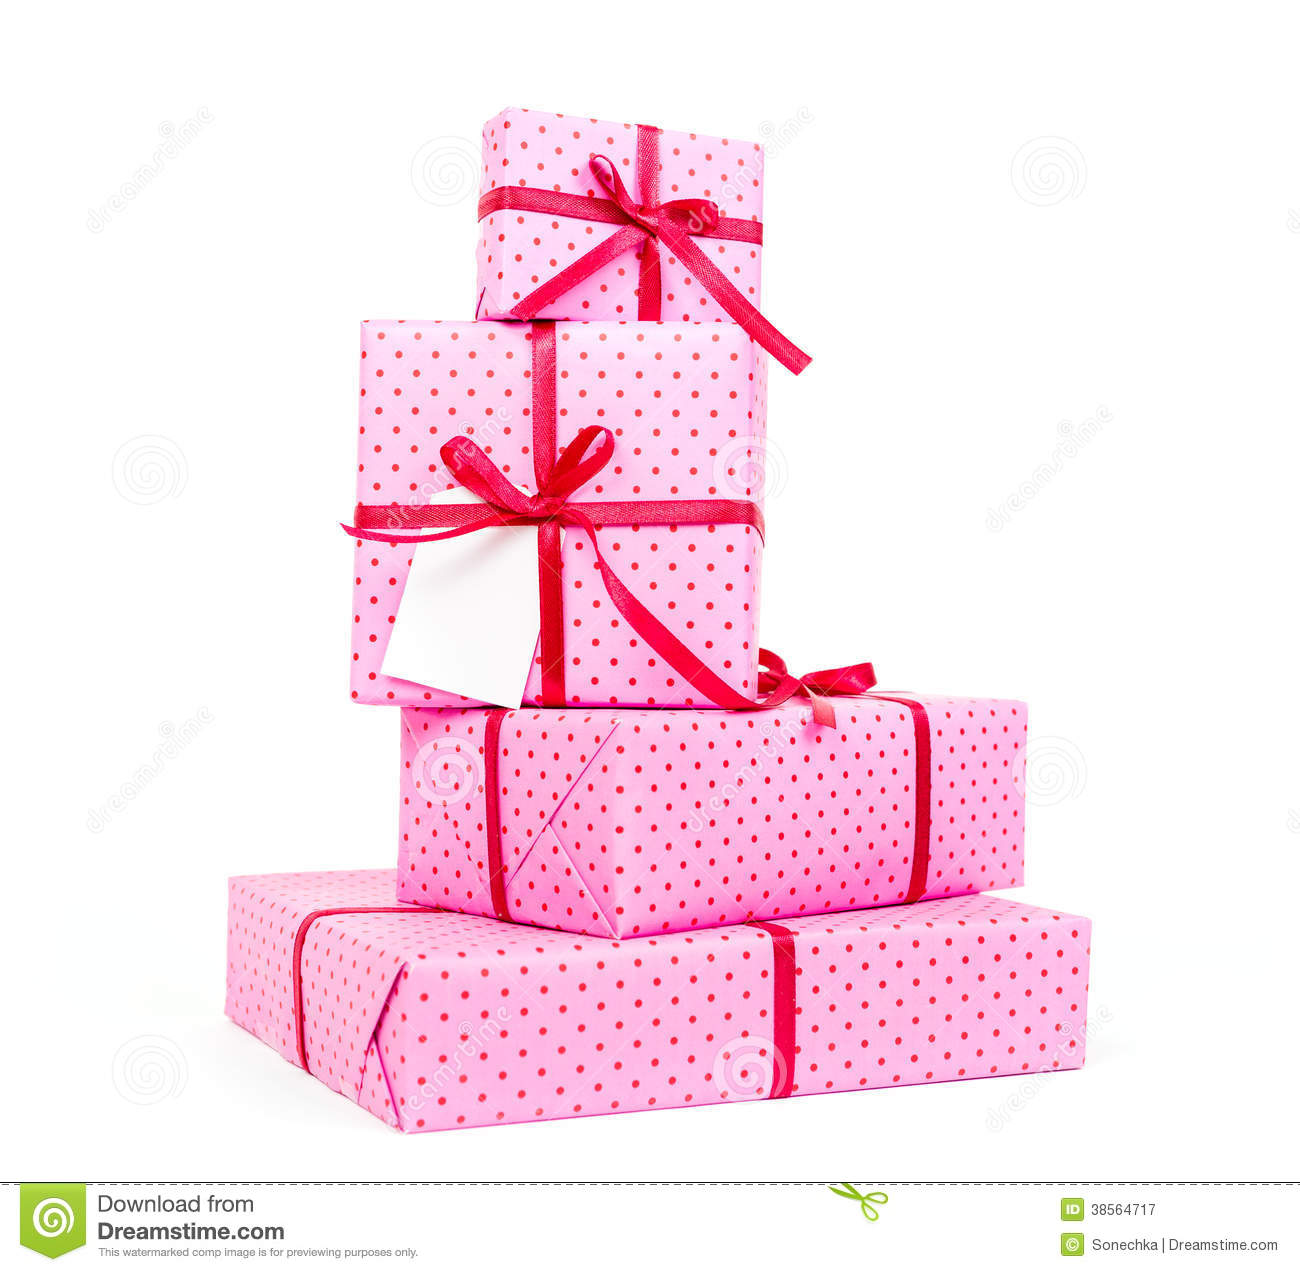 Stack of pink presents stock image ribbons